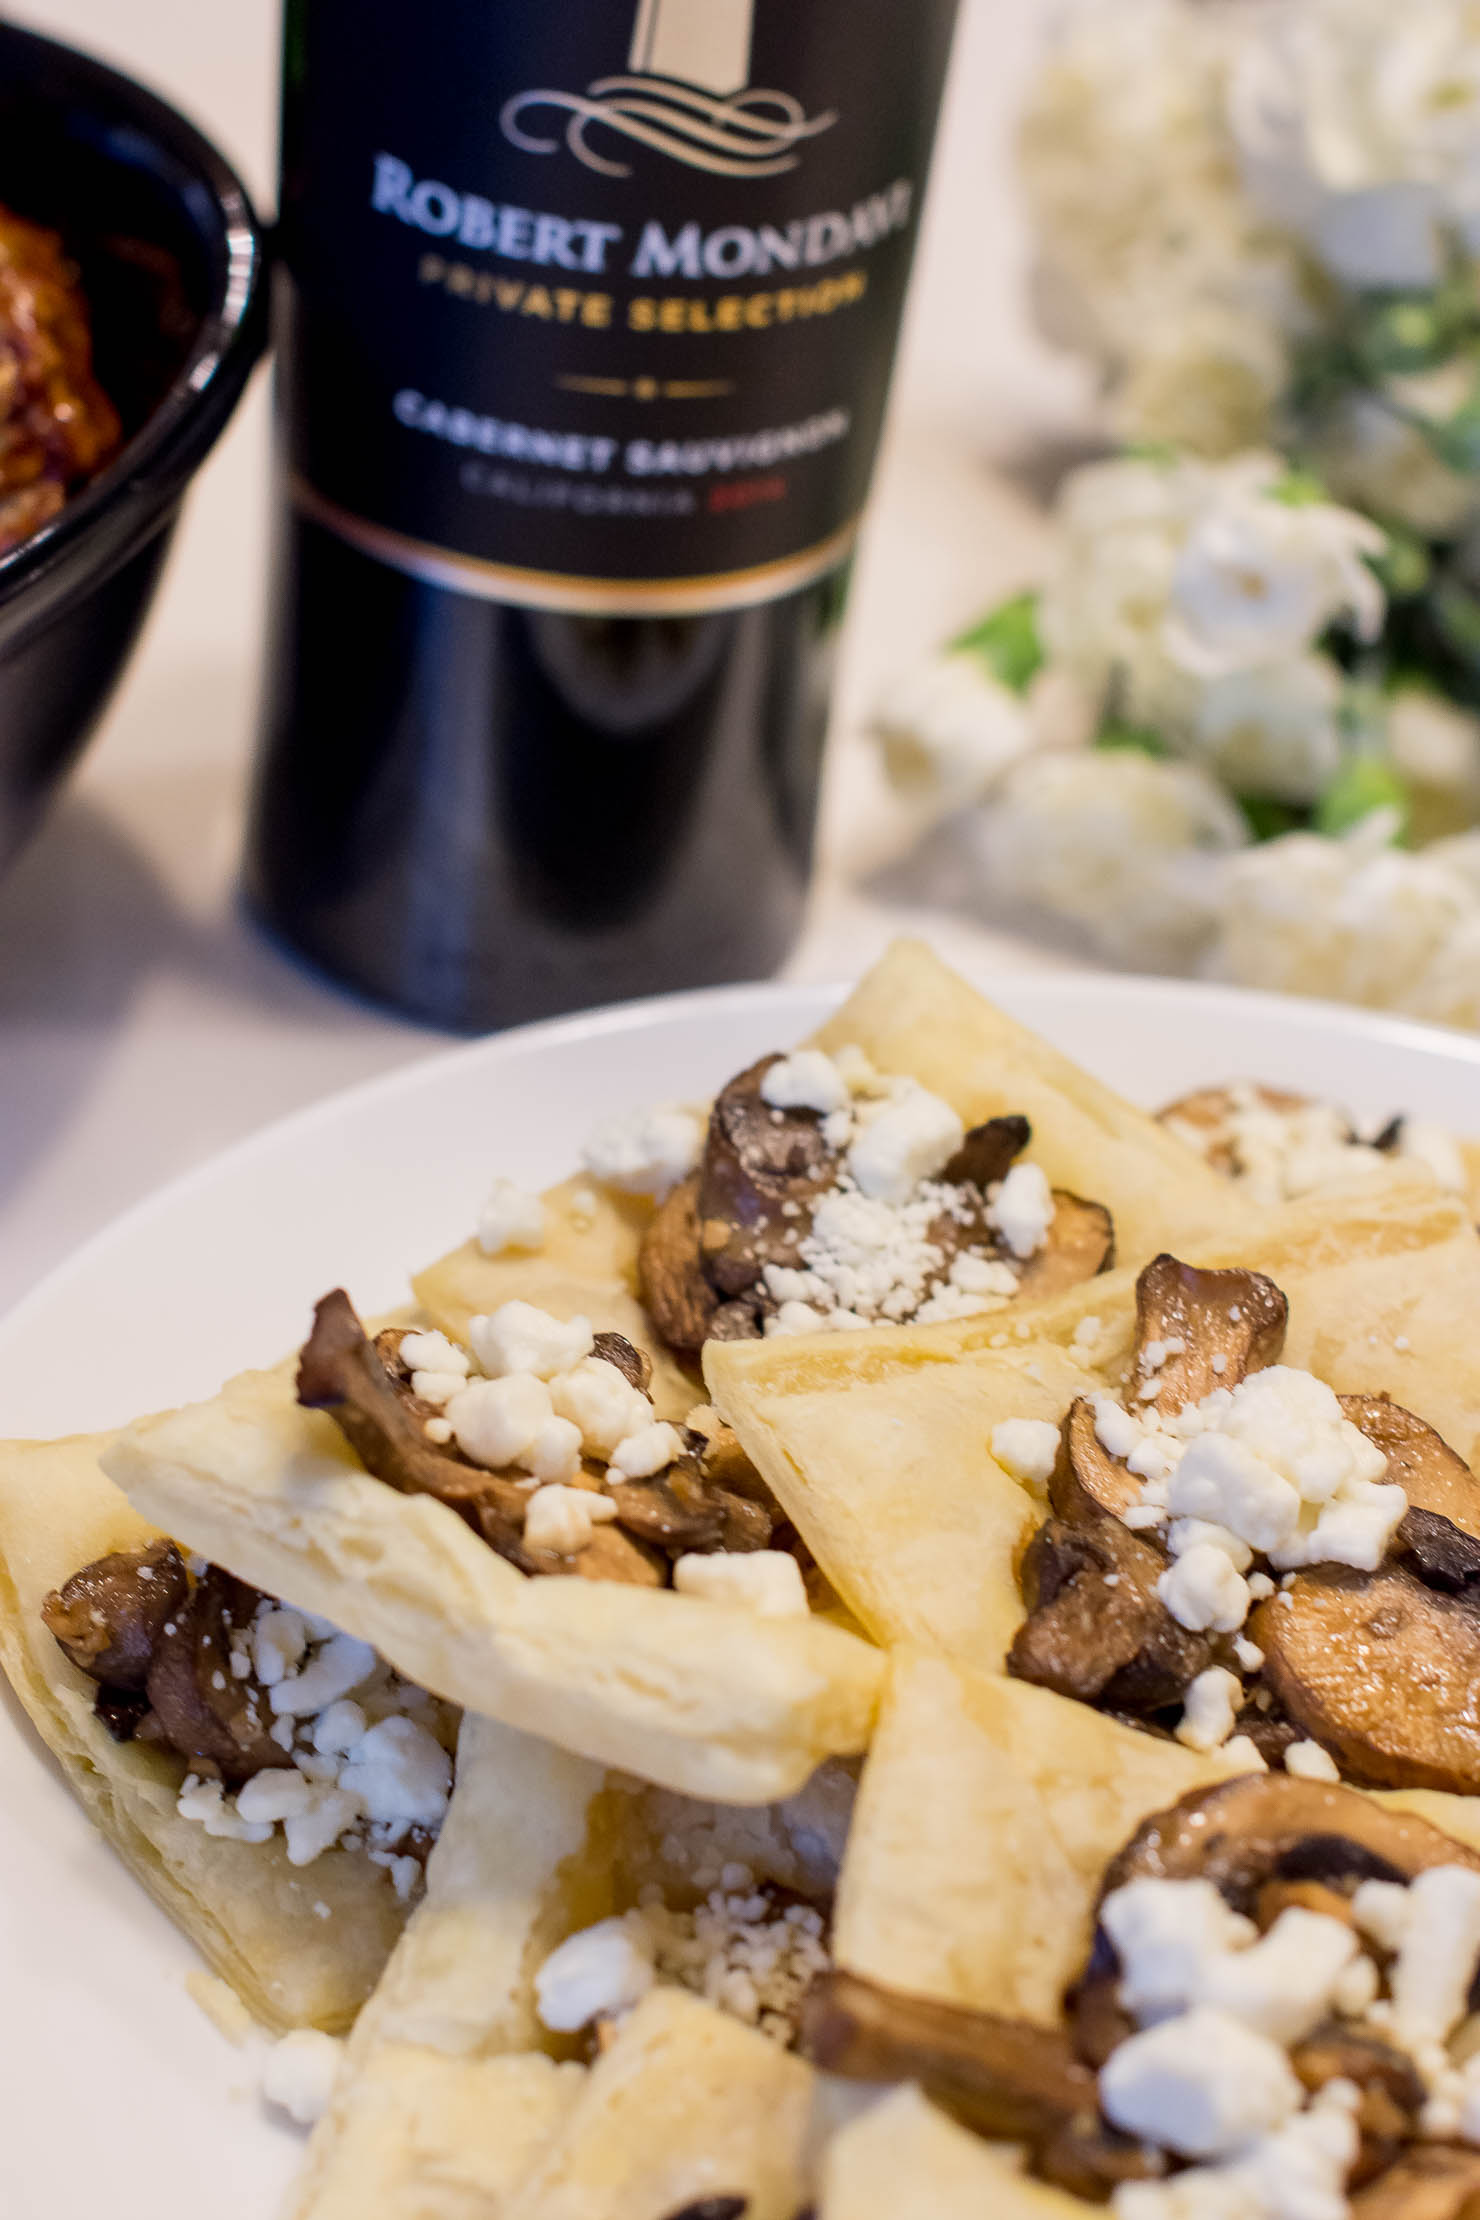 appetizers-to-pair-with-cabernet-sauvignon-Robert-Mondavi-private-selection-easy-mushroom-and-goat-cheese-tarts-3-ingredient-turkey-meatballs